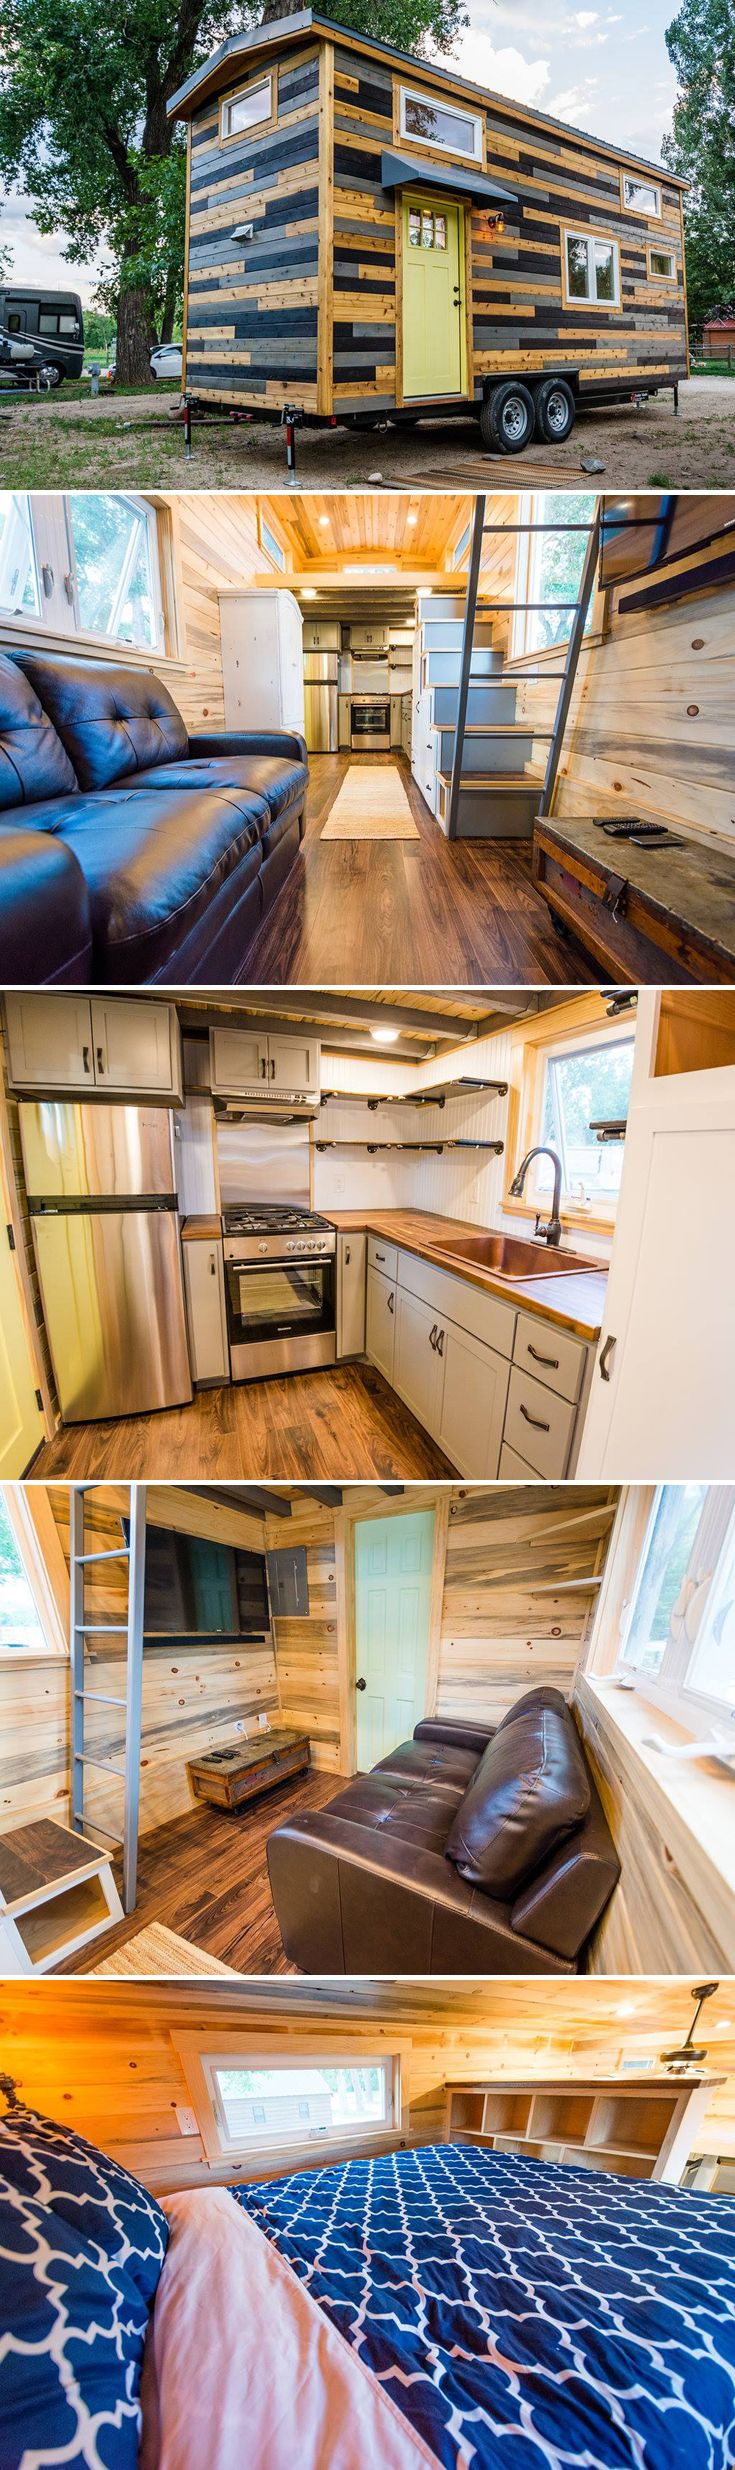 The unique exterior of this custom 24' tiny house mixes three types of tongue-and-groove cedar: natural oiled, stained, and shou sugi ban.